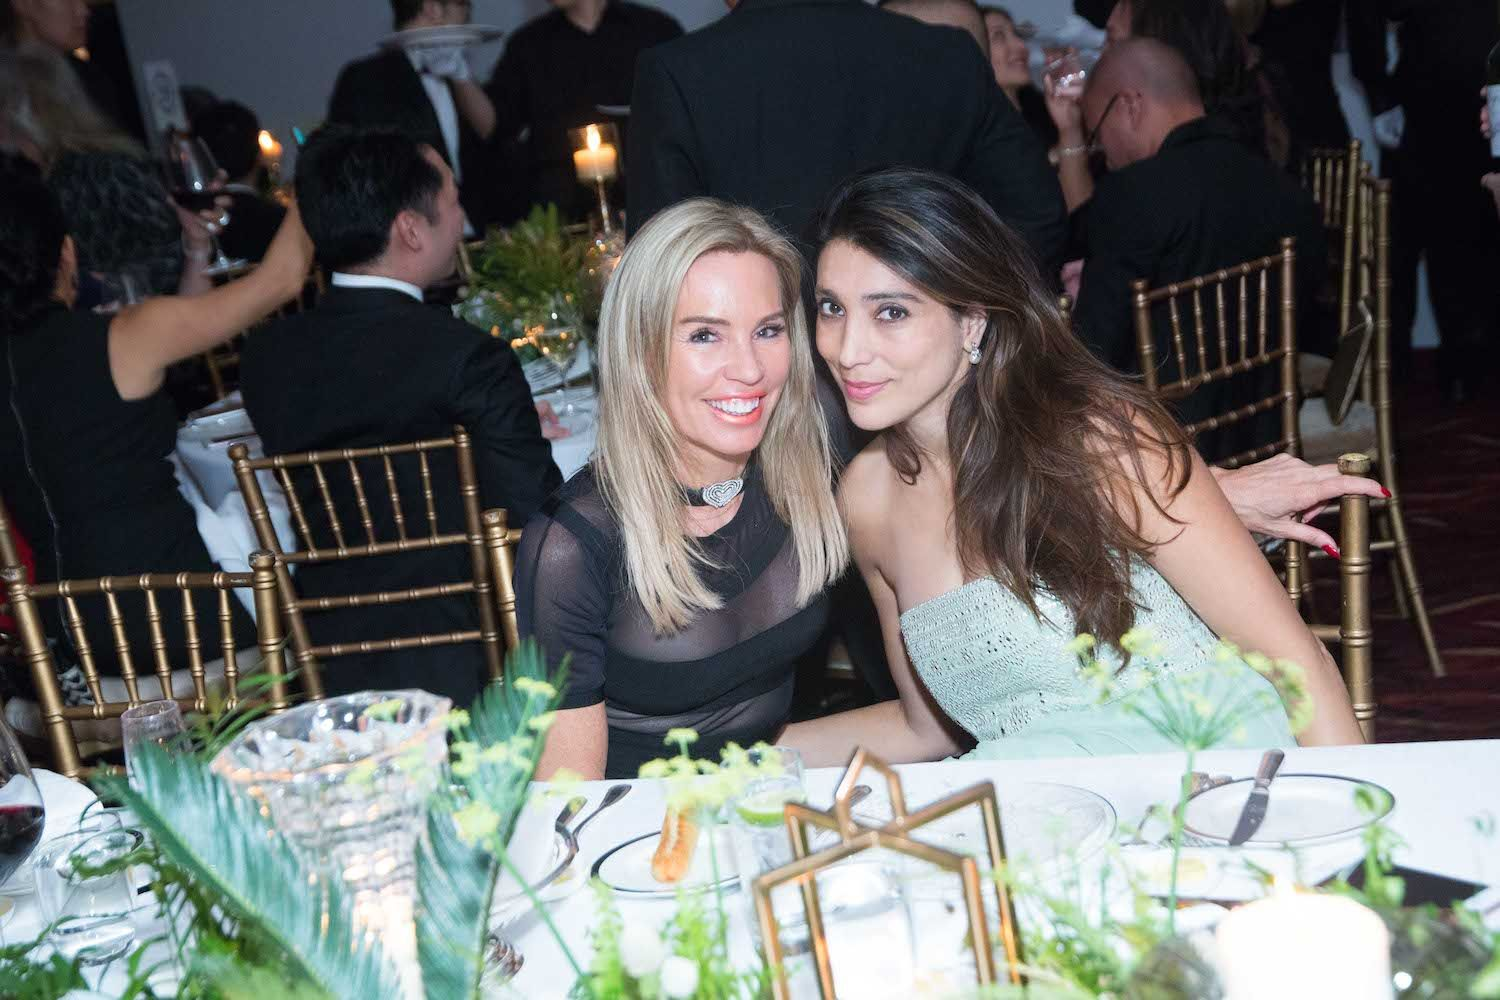 Annabelle Bond and Tania Mohan